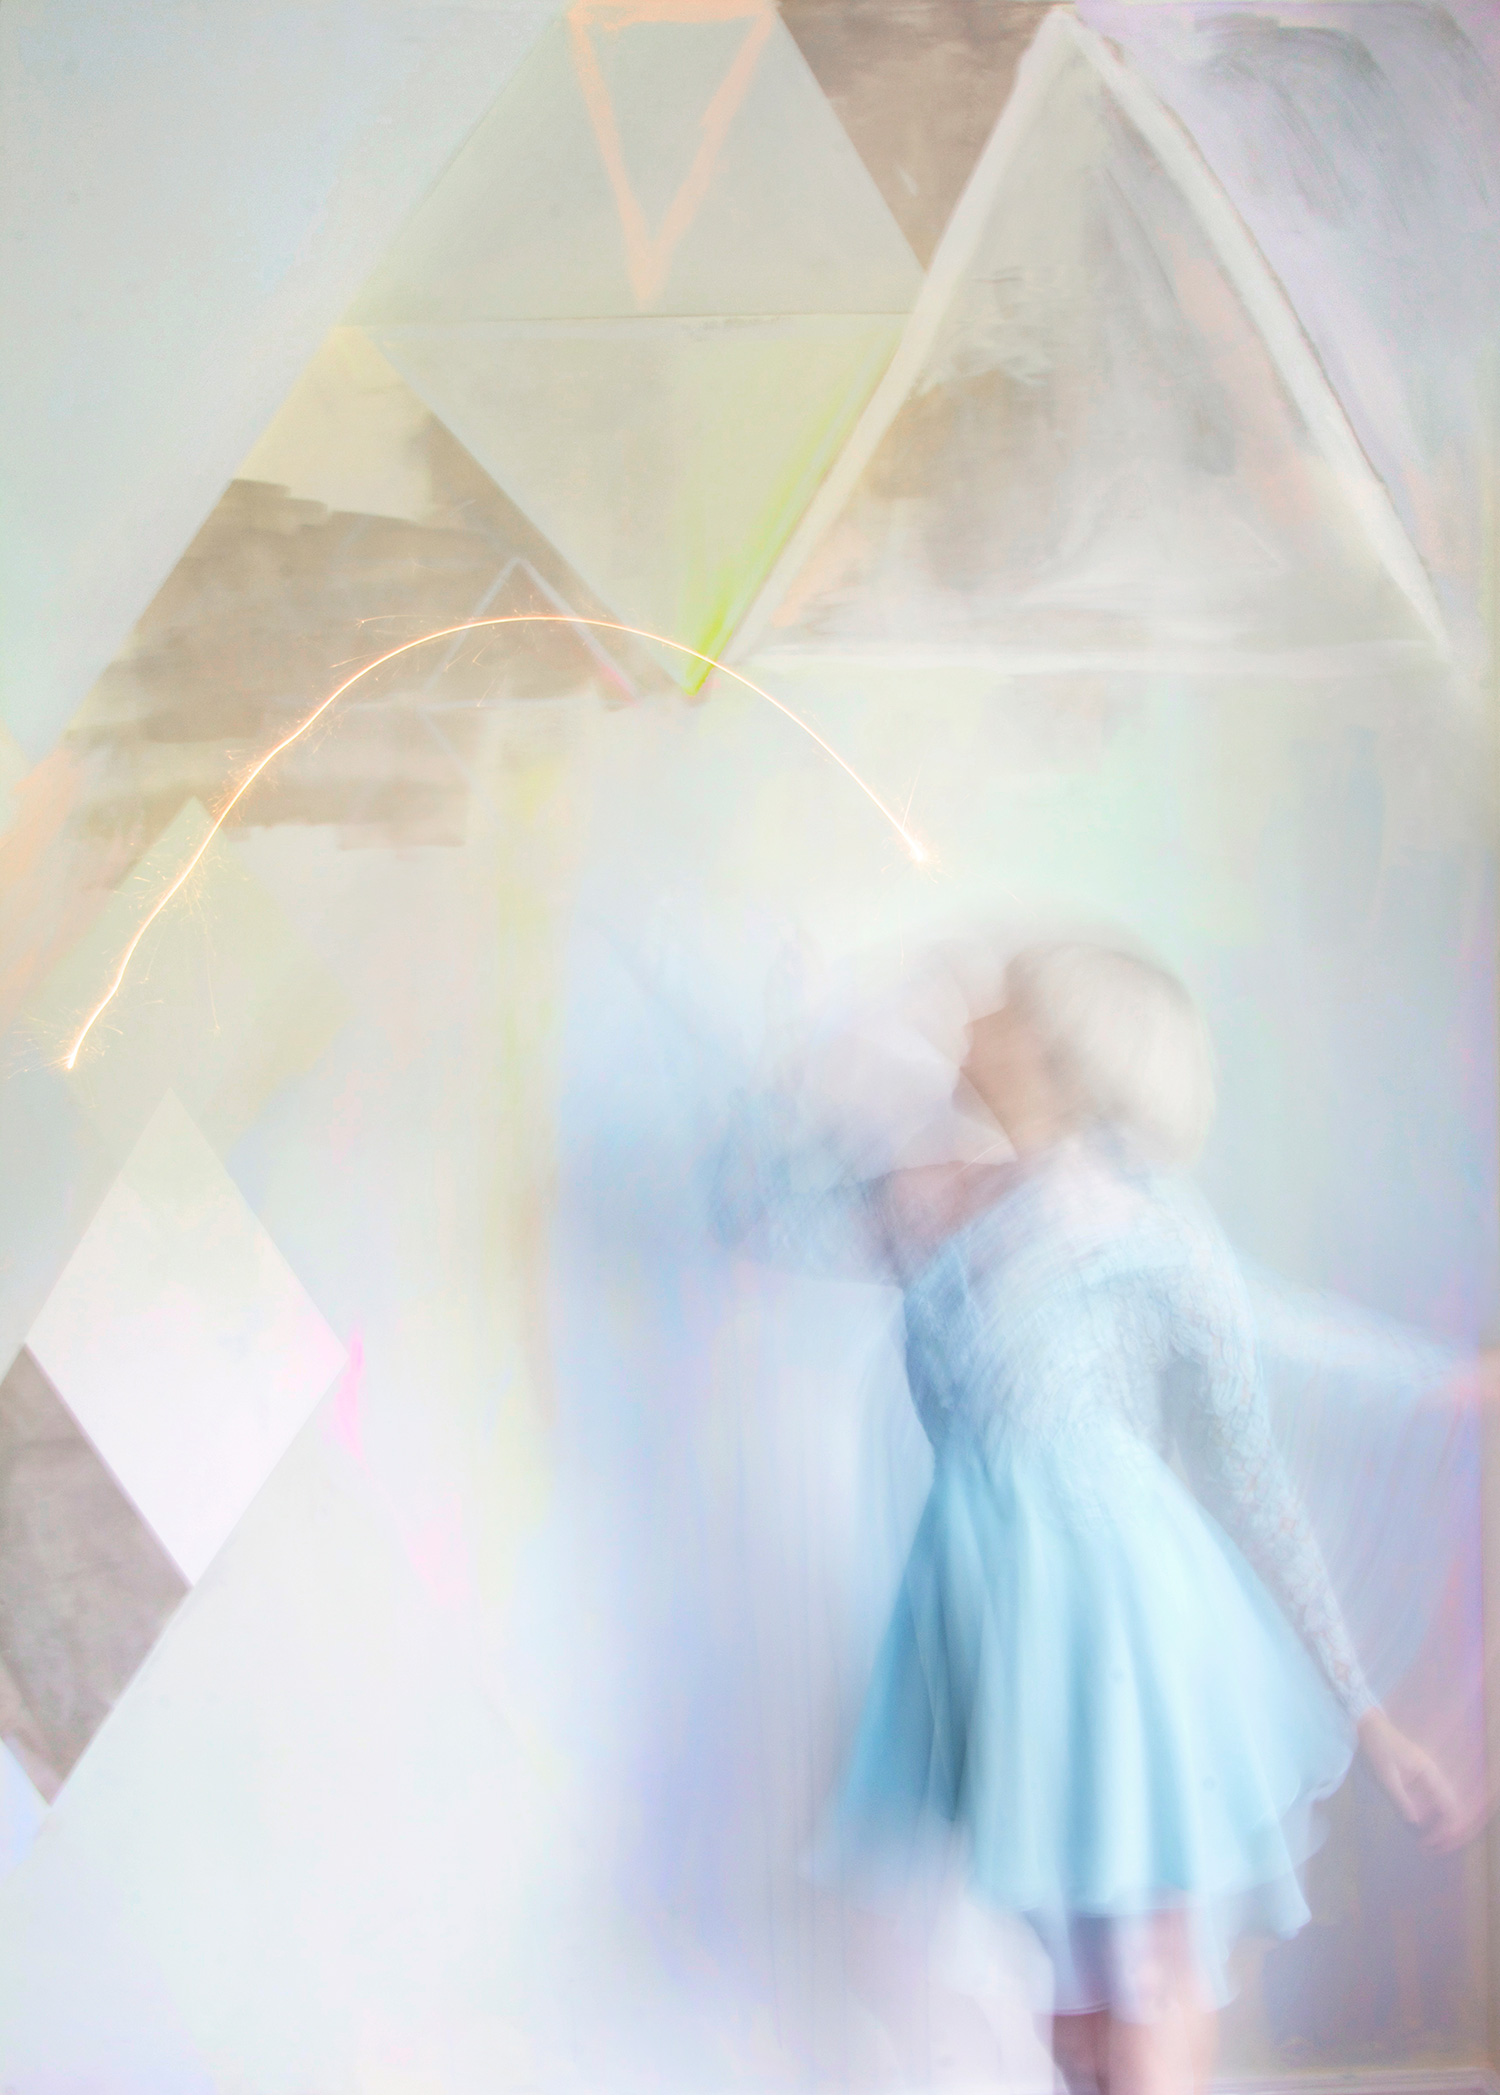 Playfully styled interior dining room with diamond abstract pastel mural featuring model playing with sparklers while wearing baby blue lace vintage dress.